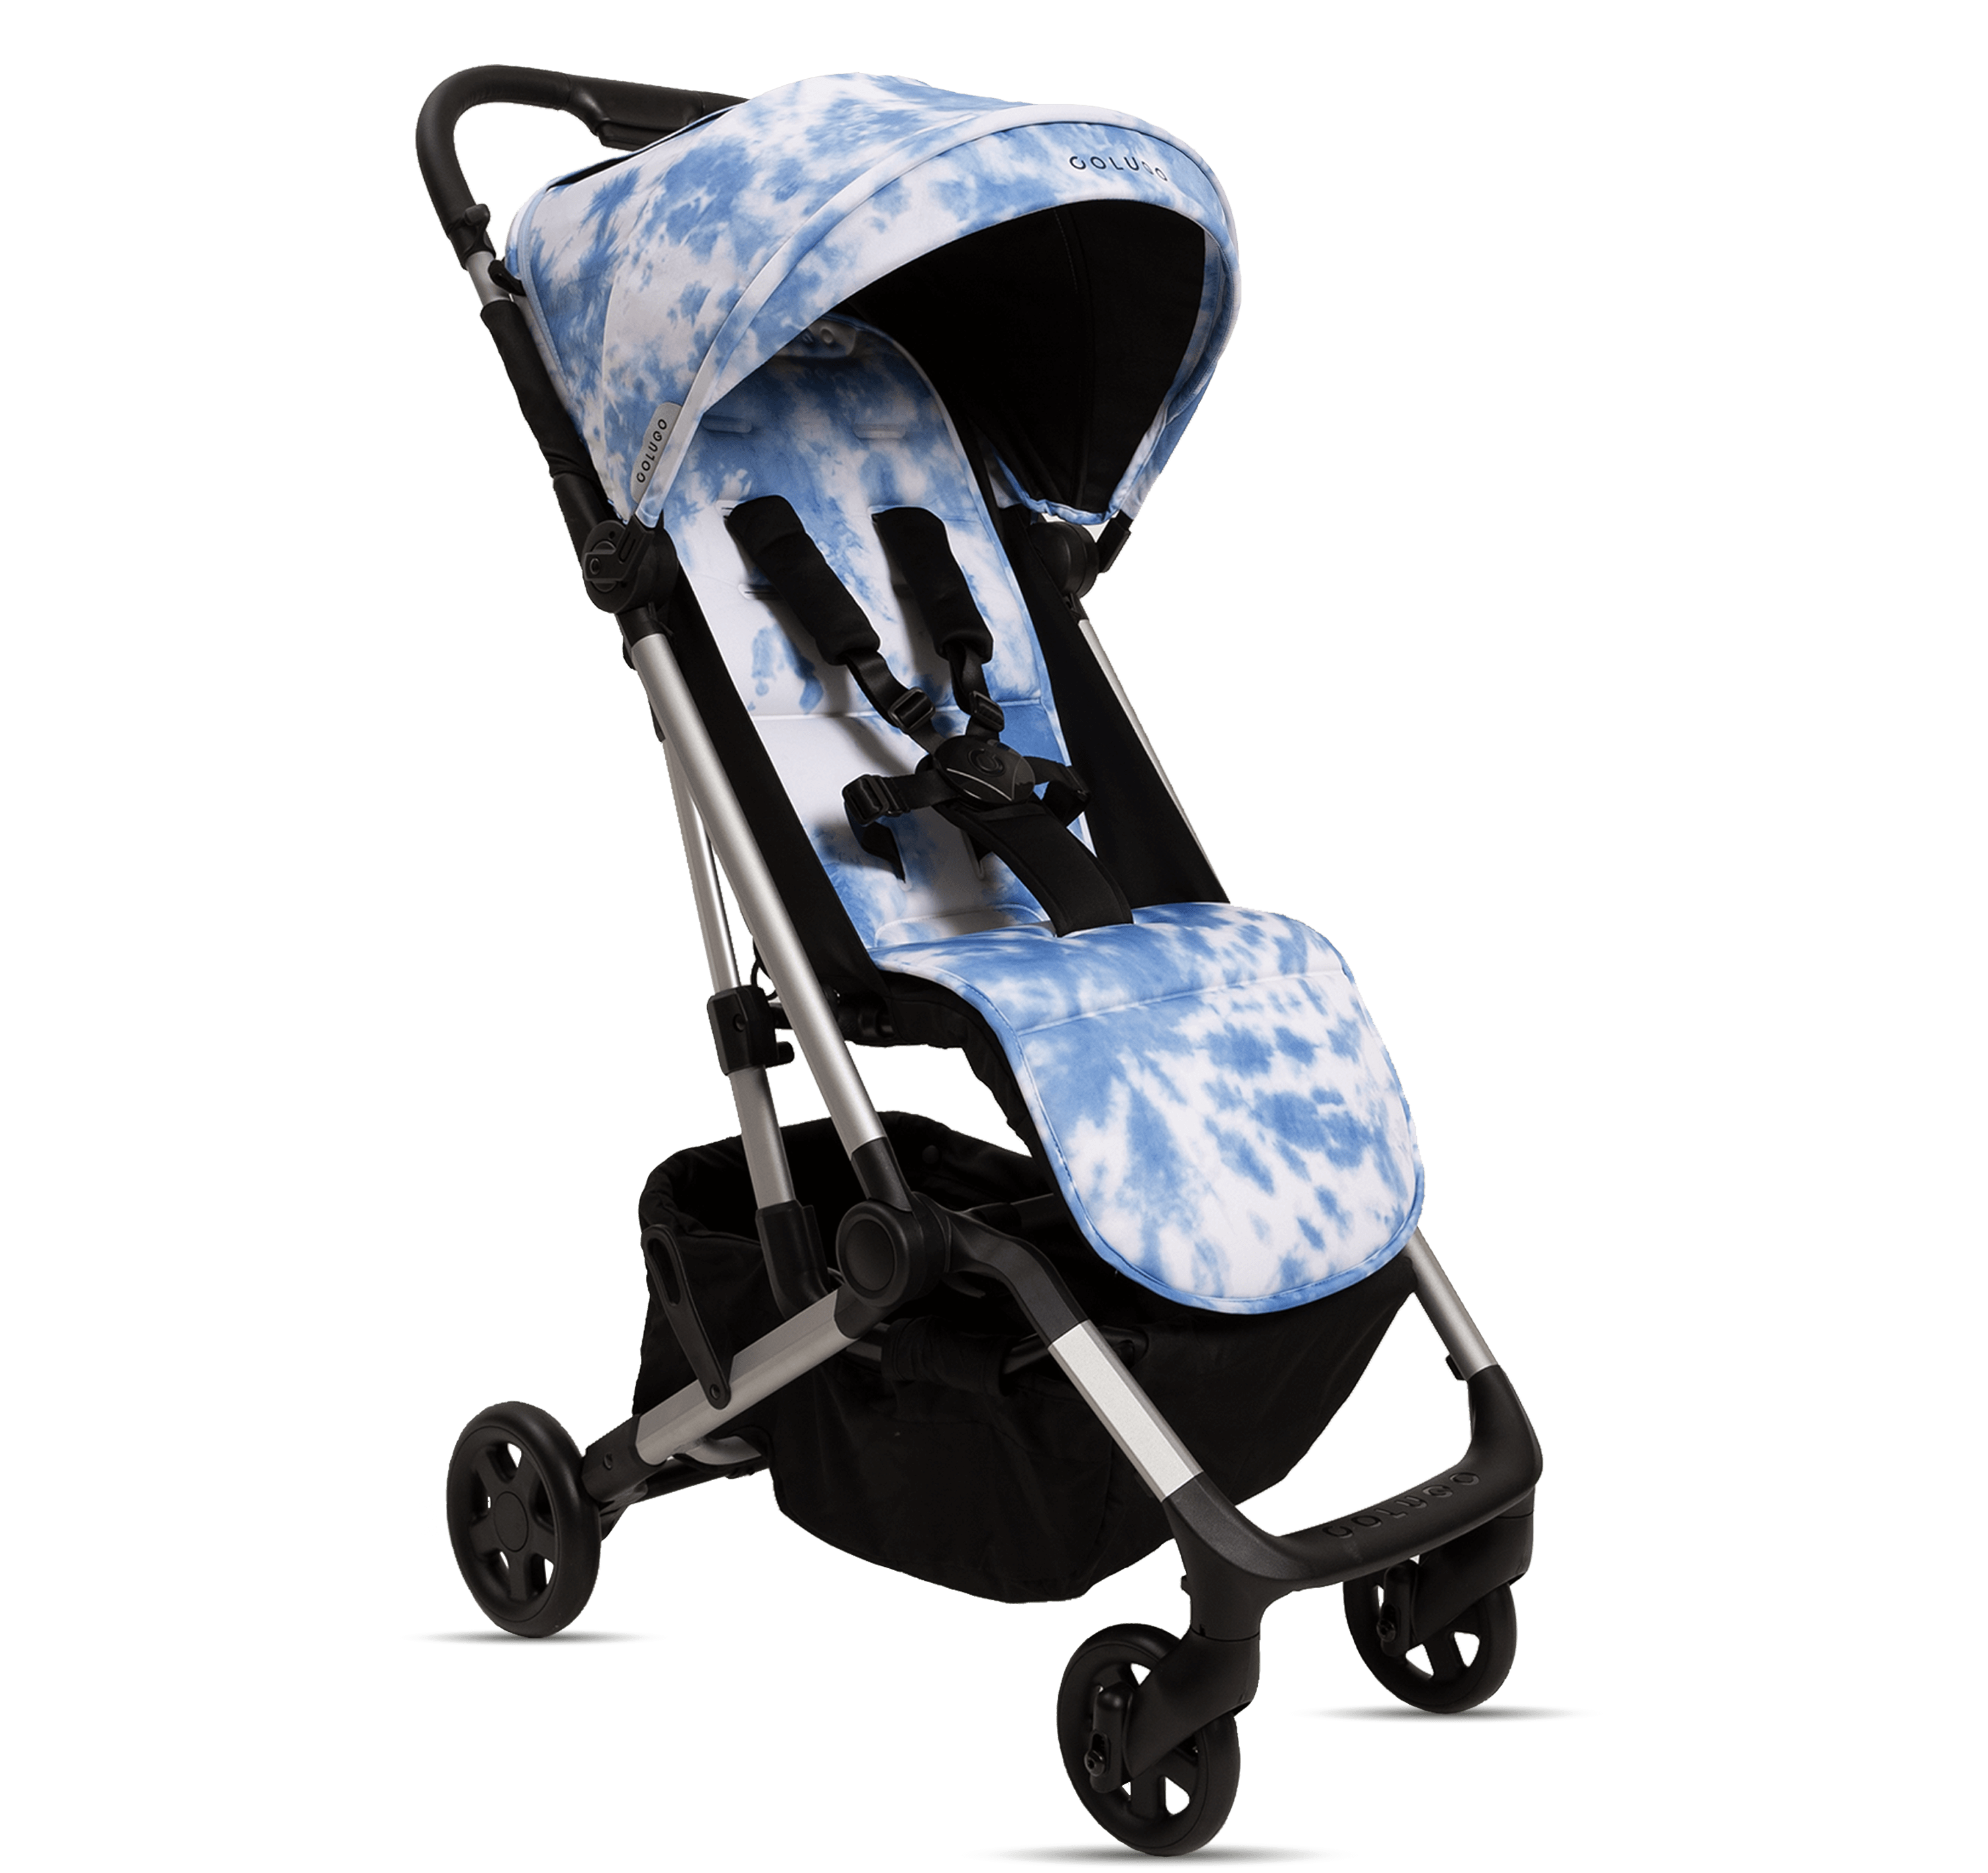 The Compact Stroller Floral Diaper backpack, Compact